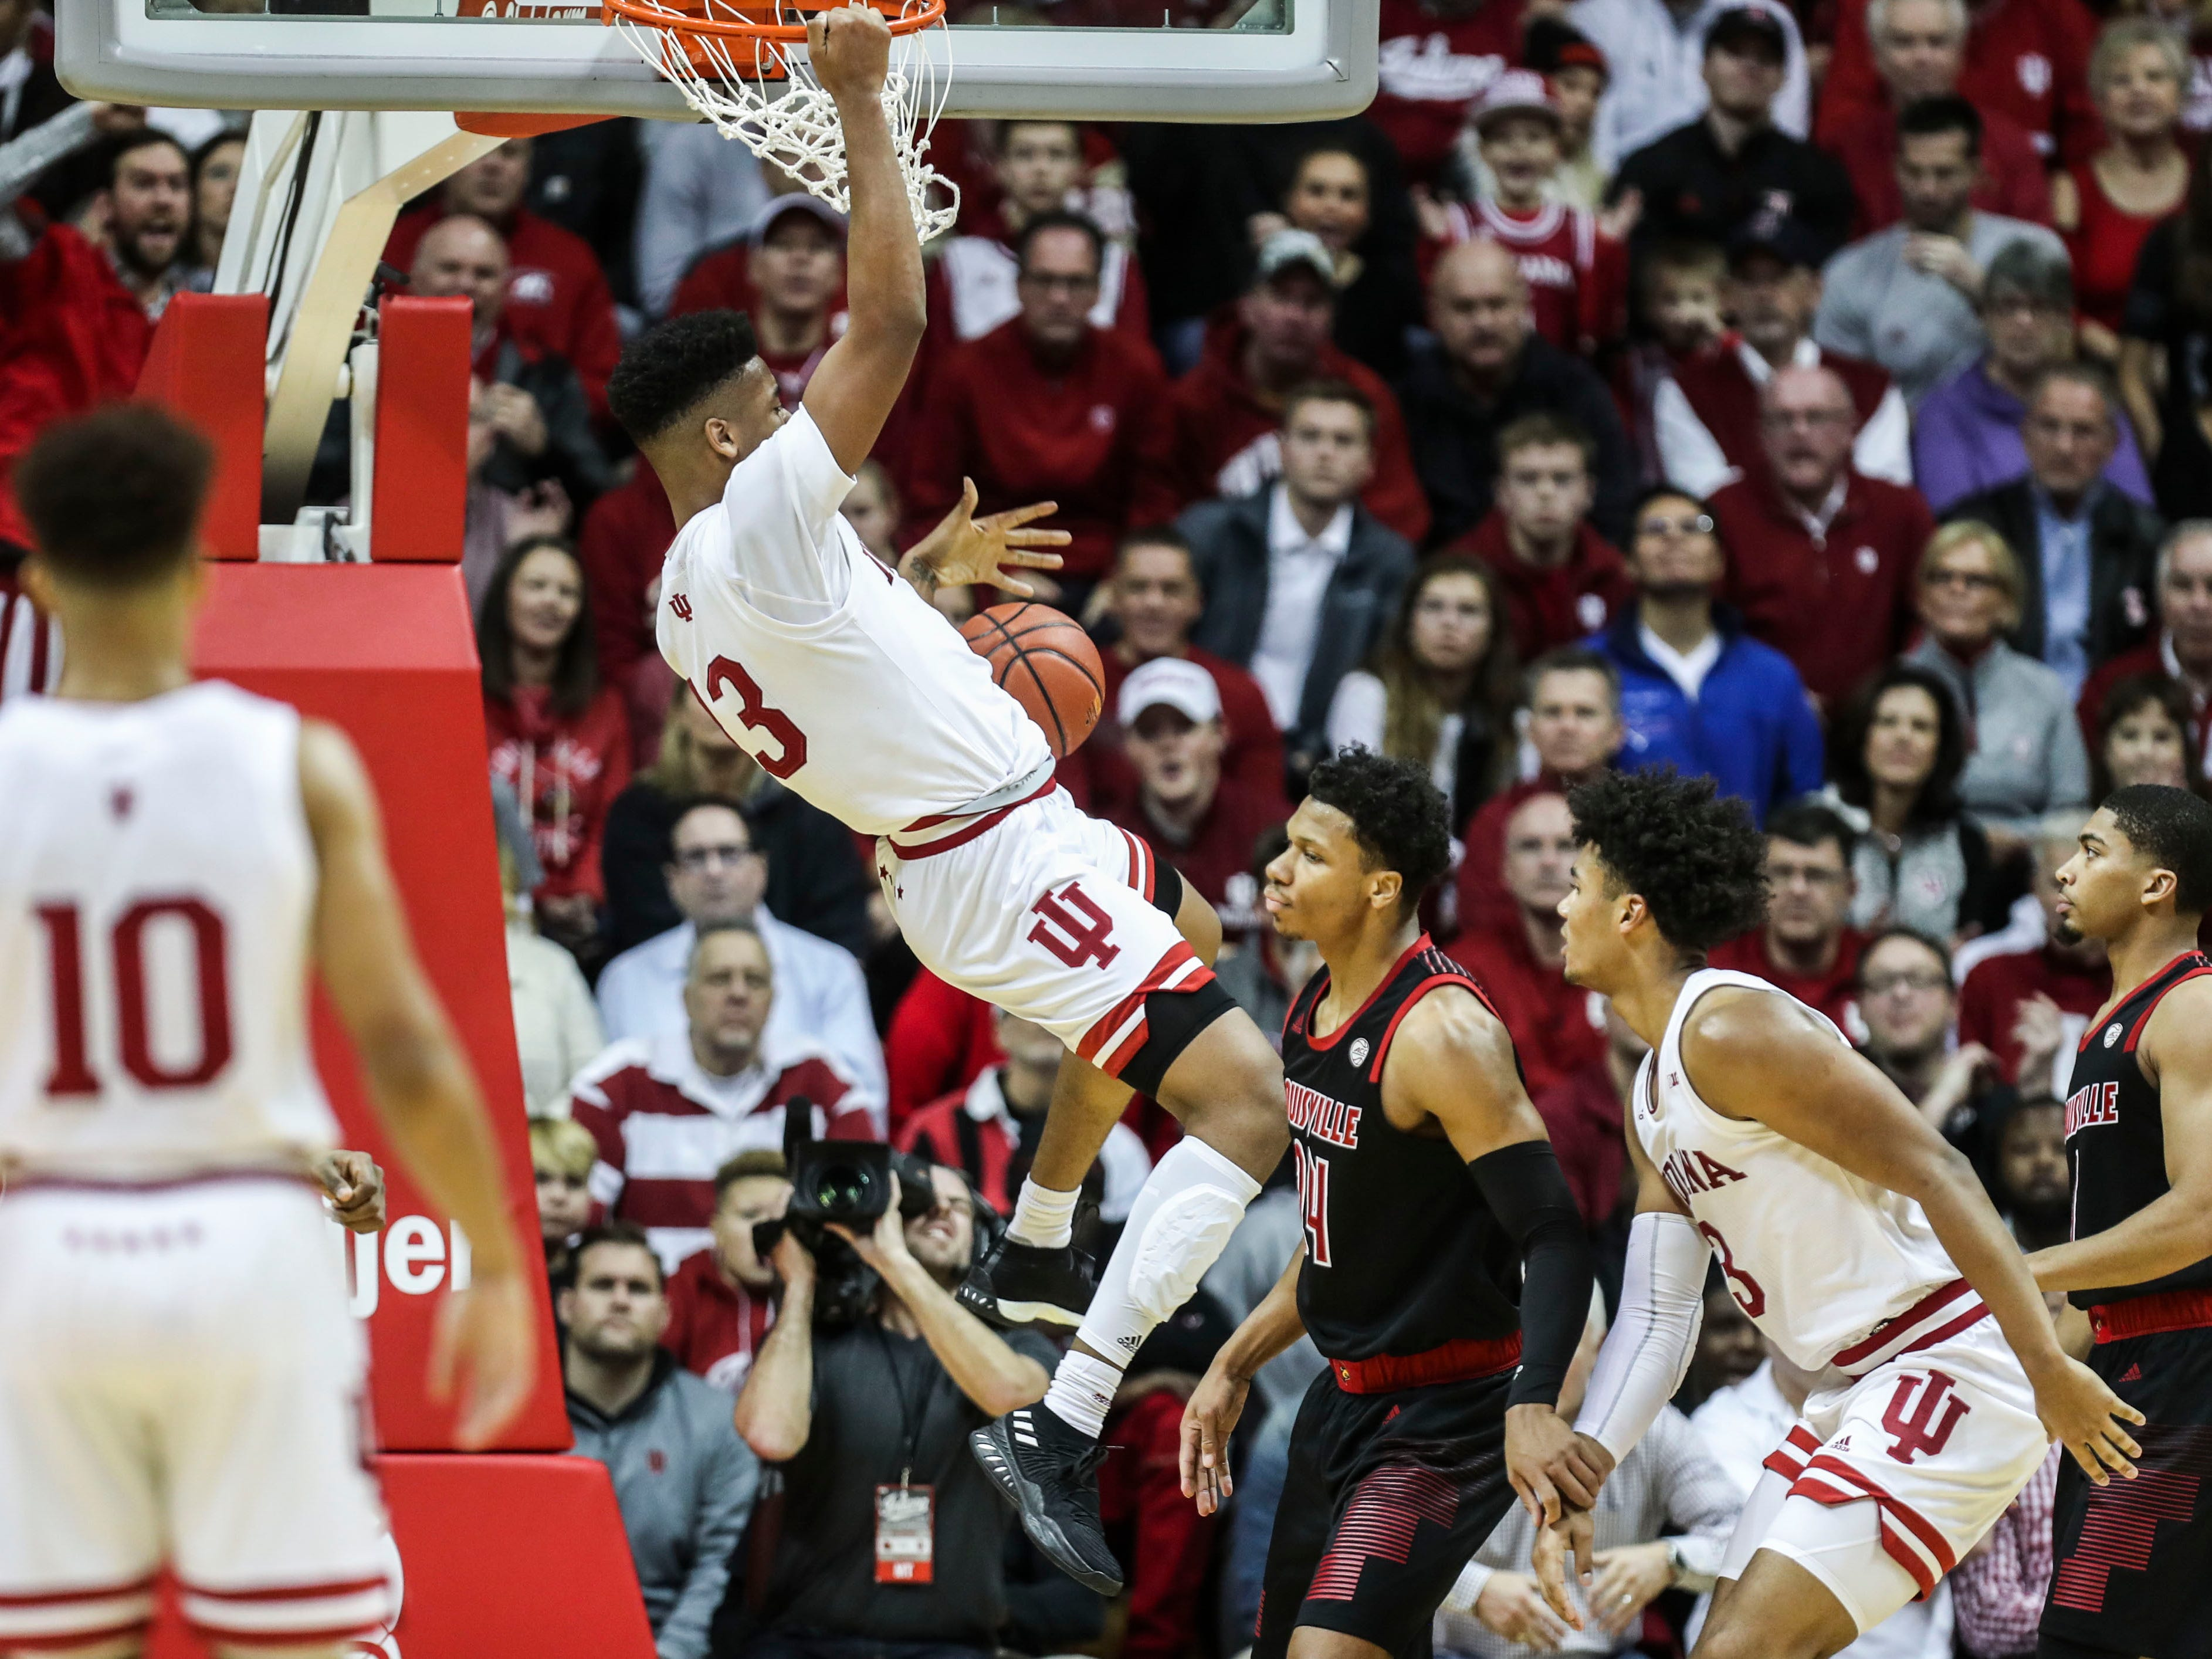 Indiana's Juwan Morgan slammed down two of his 15 points Saturday, Dec. 8, 2018 at Simon Skjodt Assembly Hall in Bloomington, Ind. The Hoosier beat Louisville 68-67